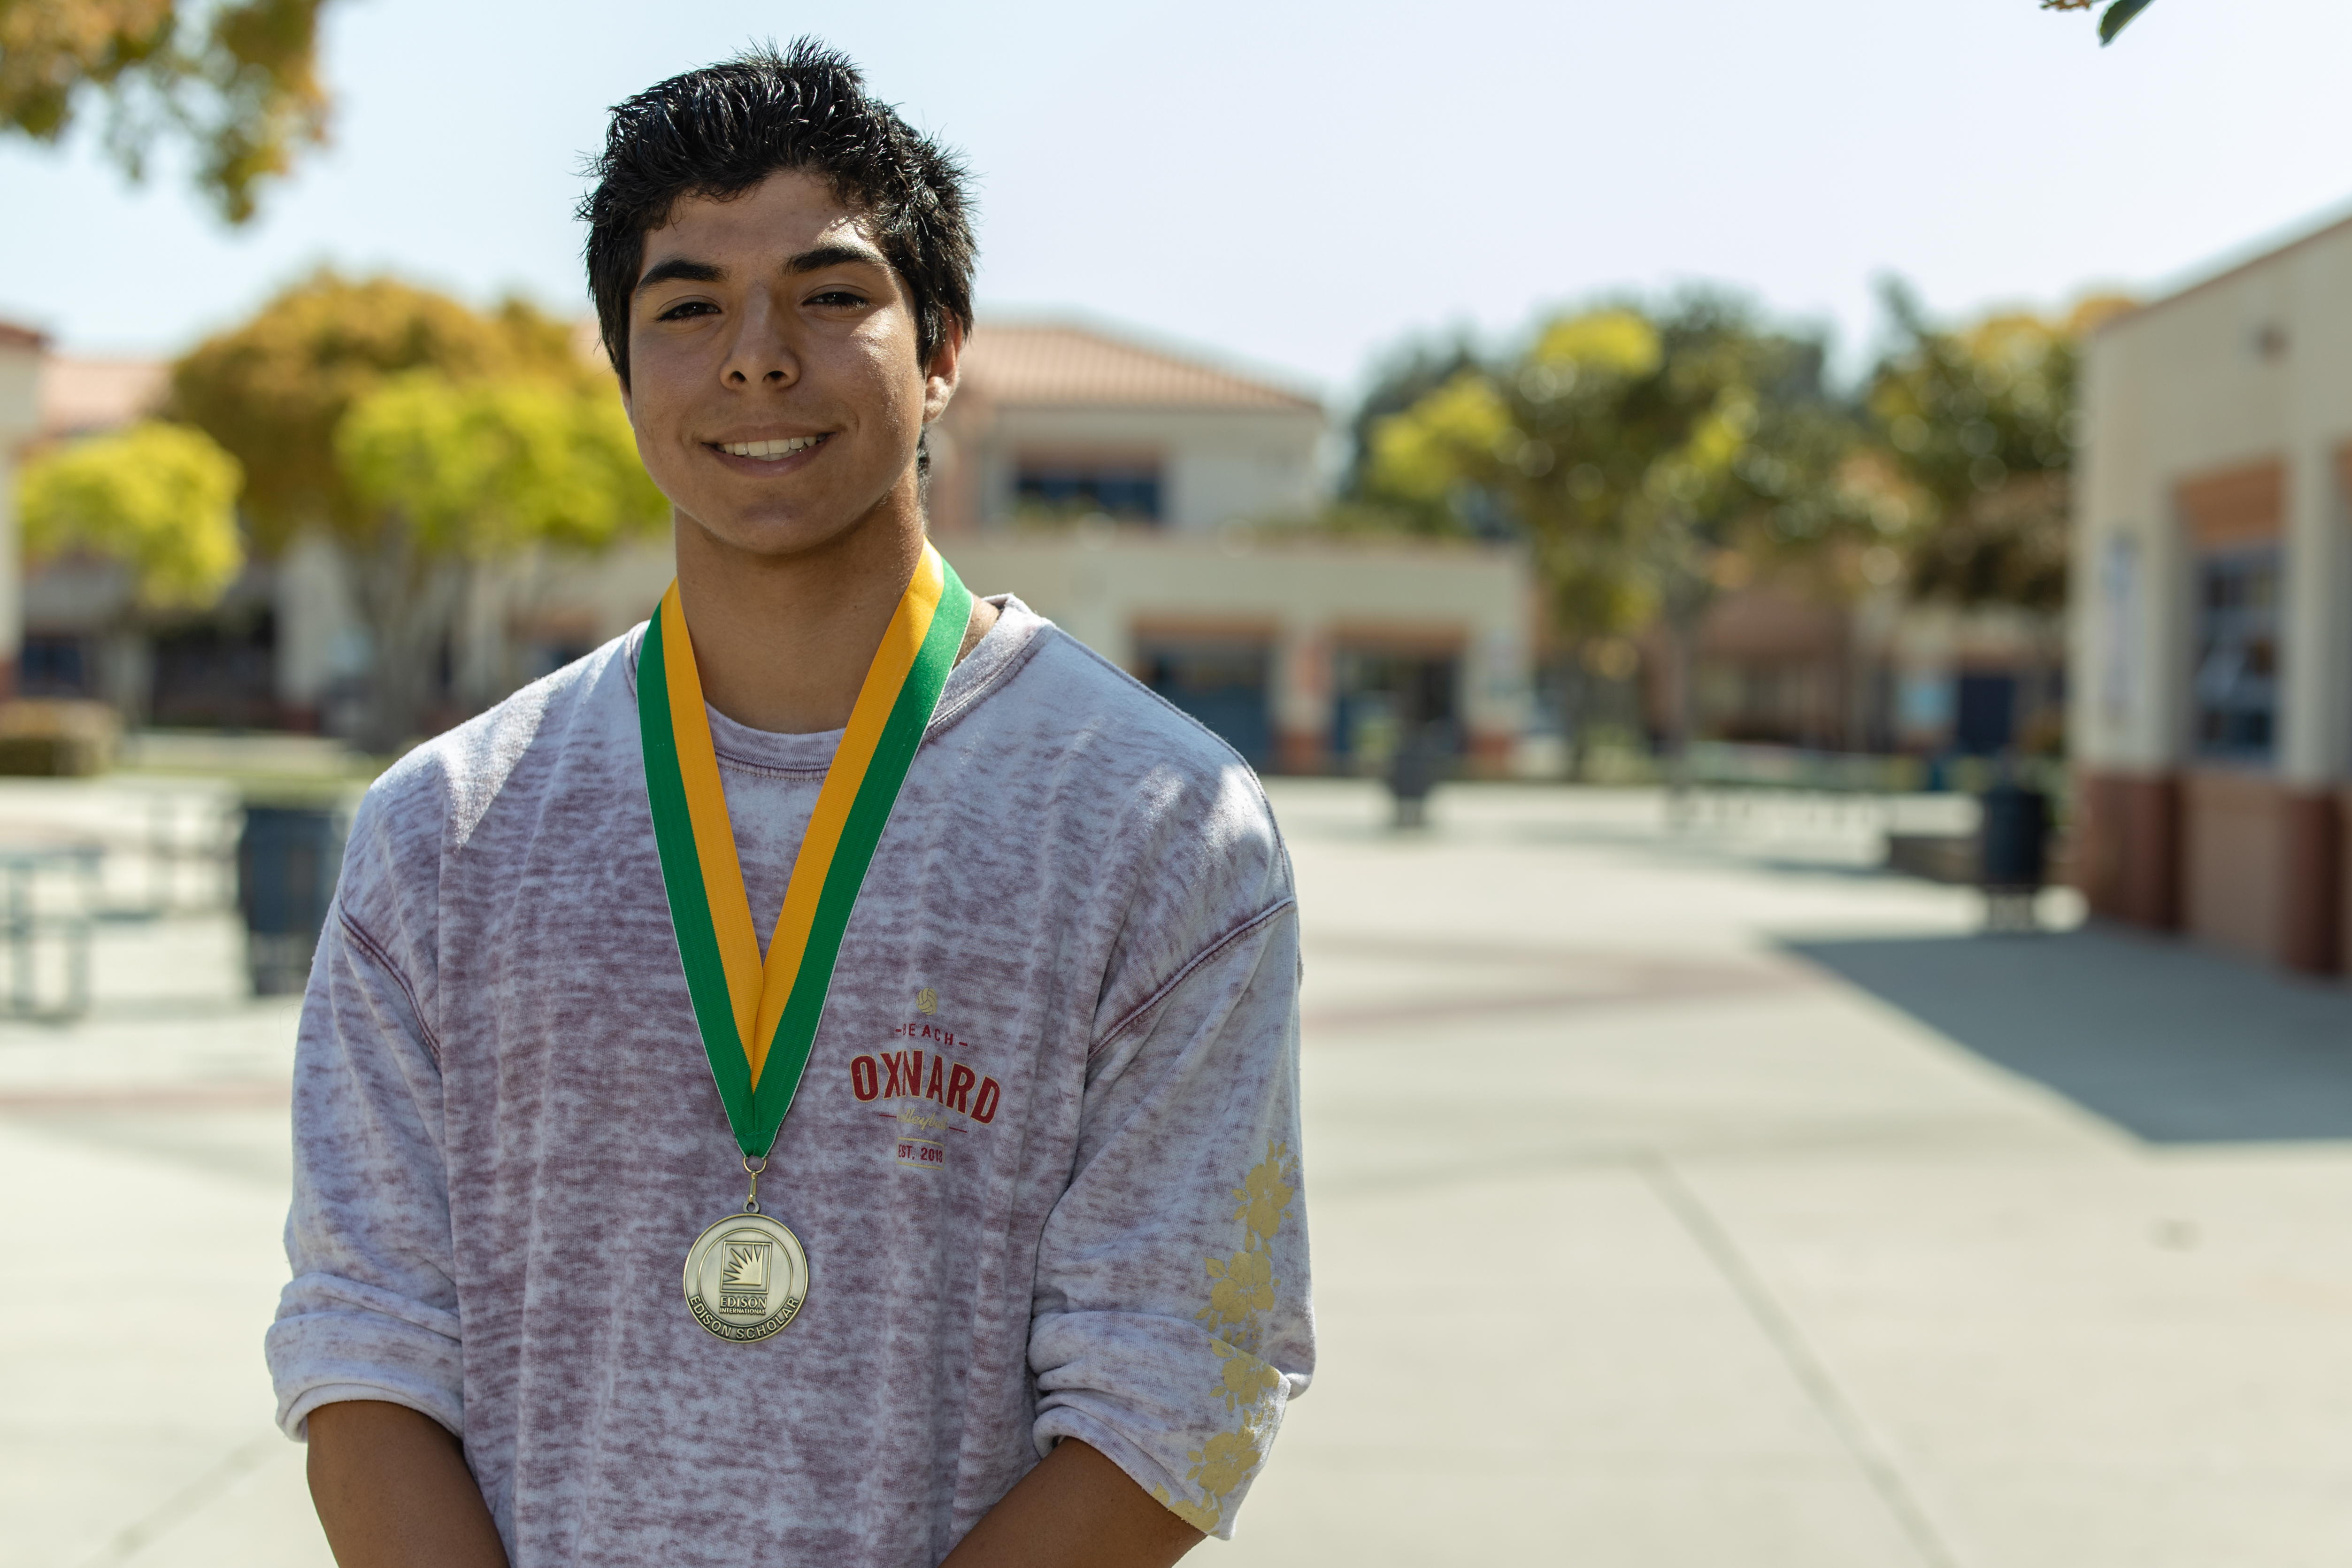 2019 Edison Scholar David Pulido at Oxnard High School